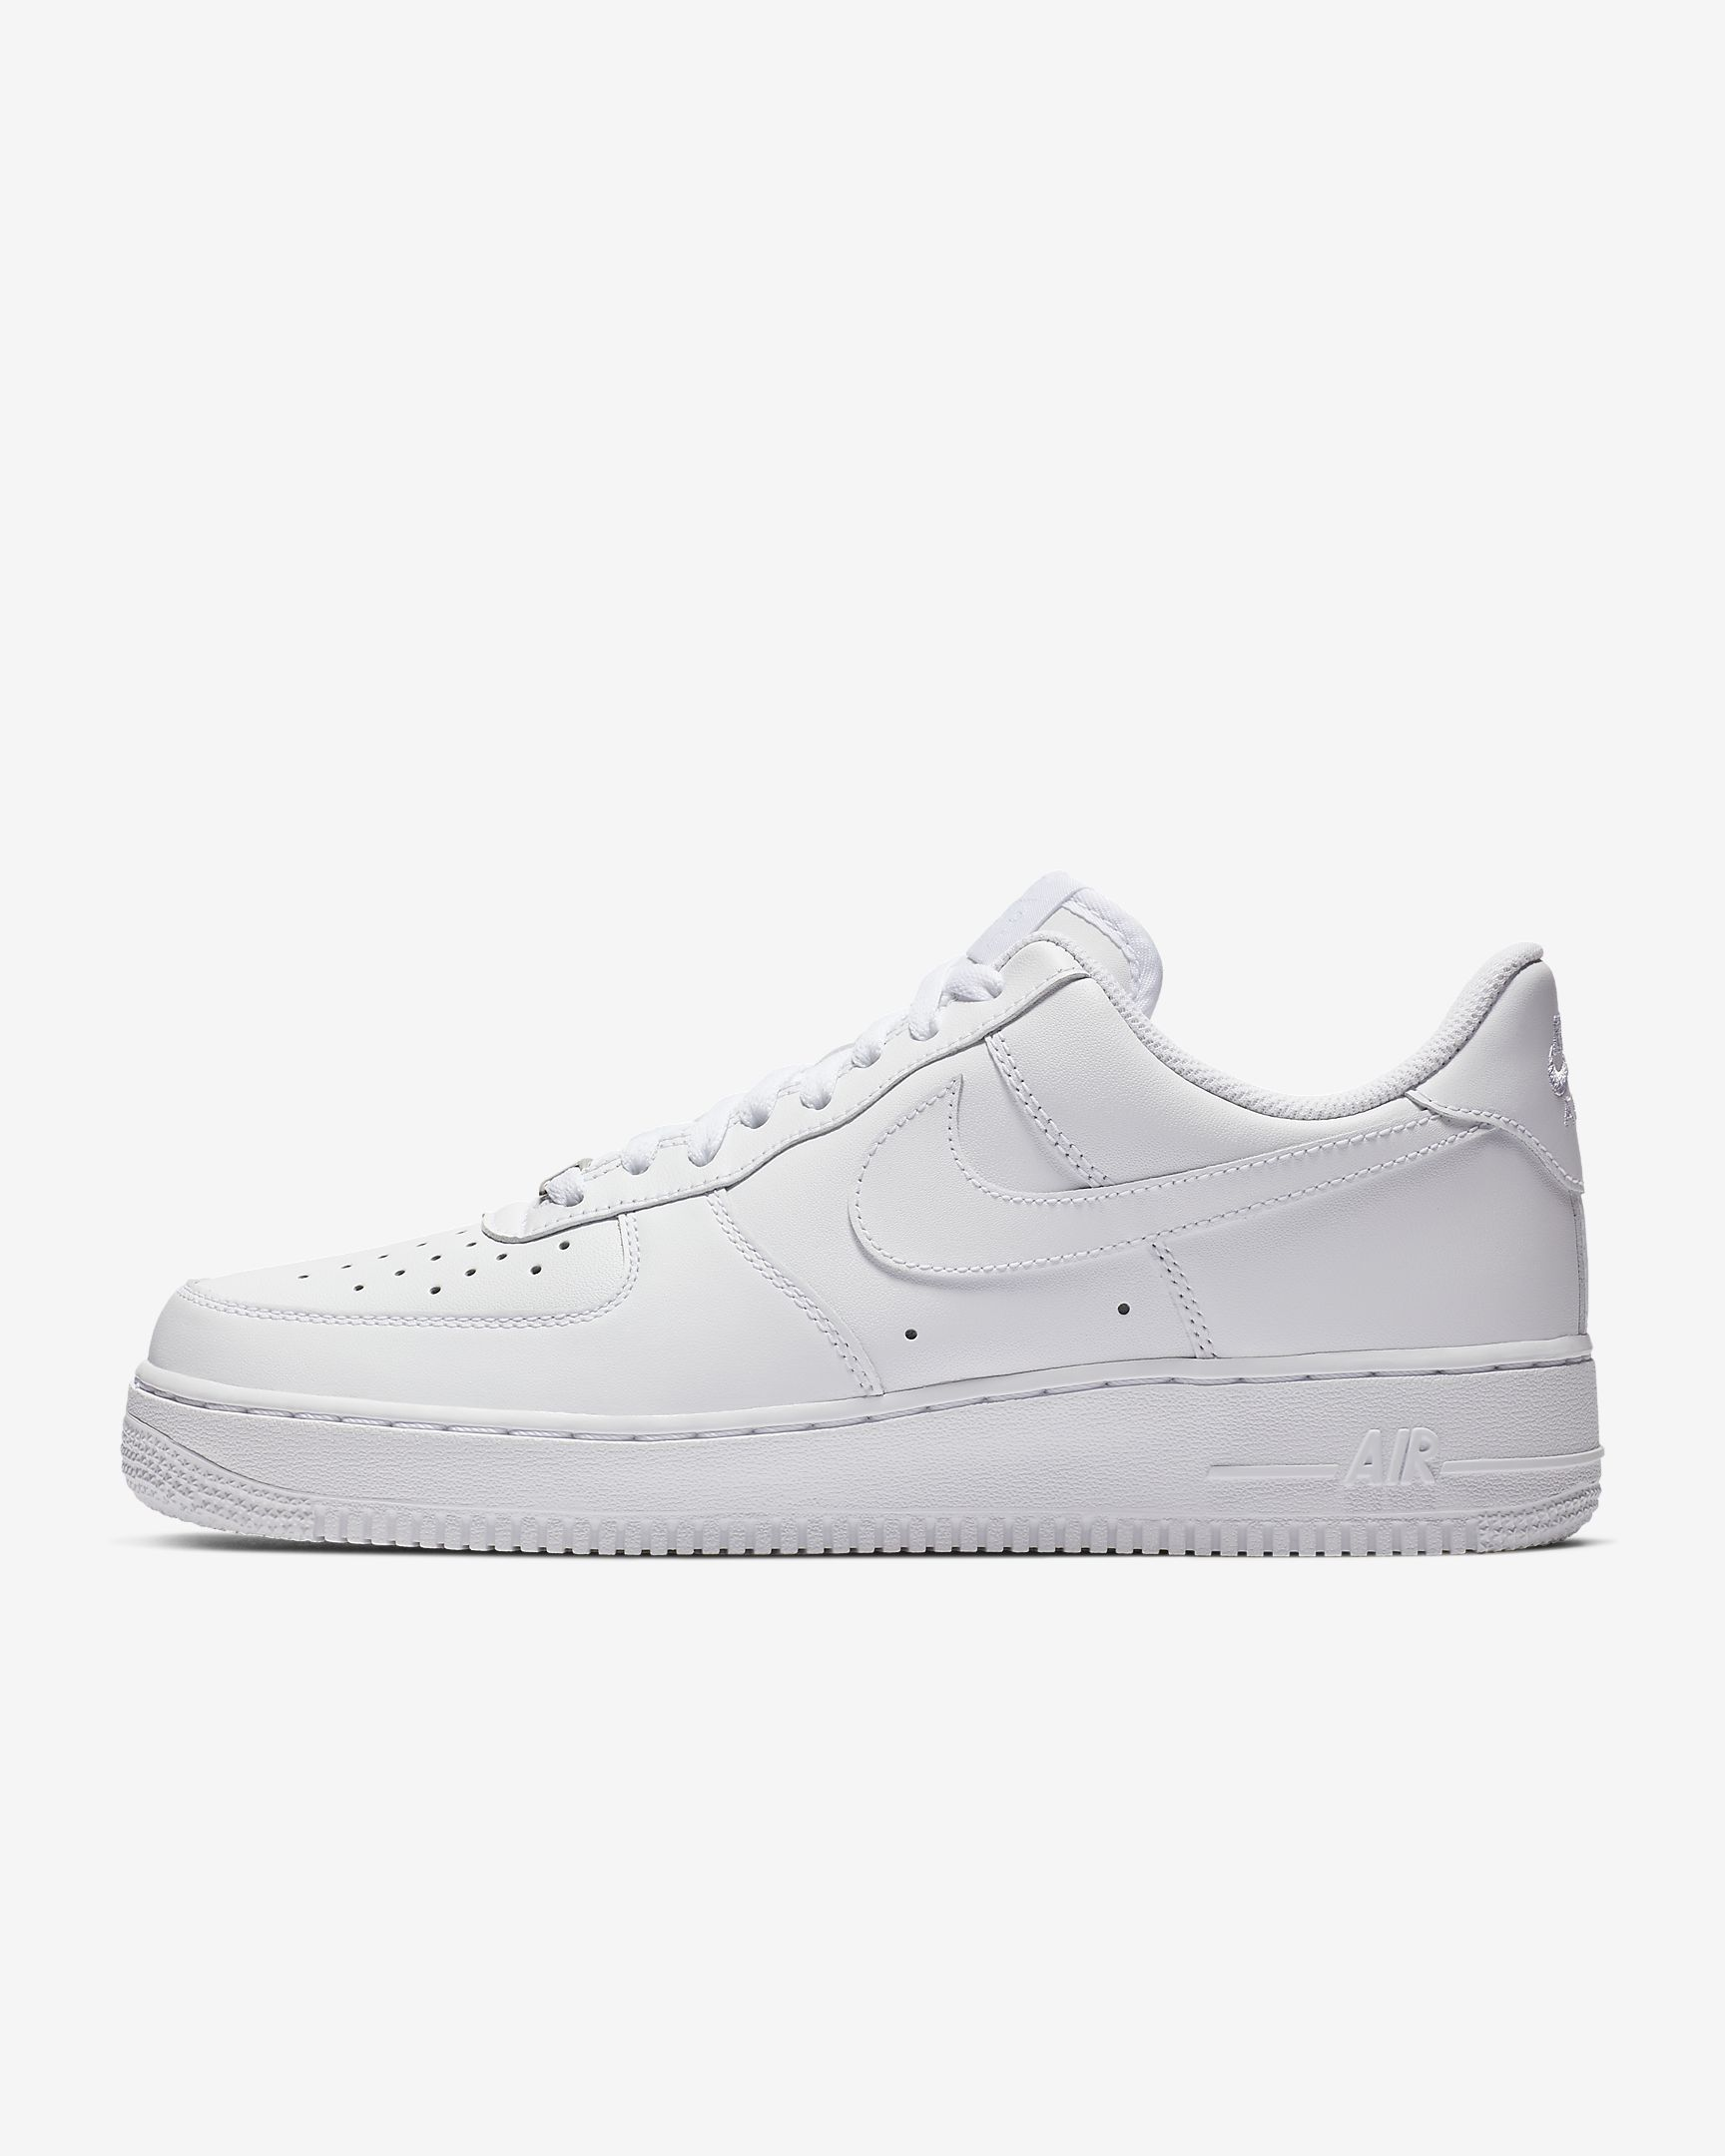 Air Force 1 '07 by Nike, available on nike.com for $90 Kendall Jenner Shoes Exact Product